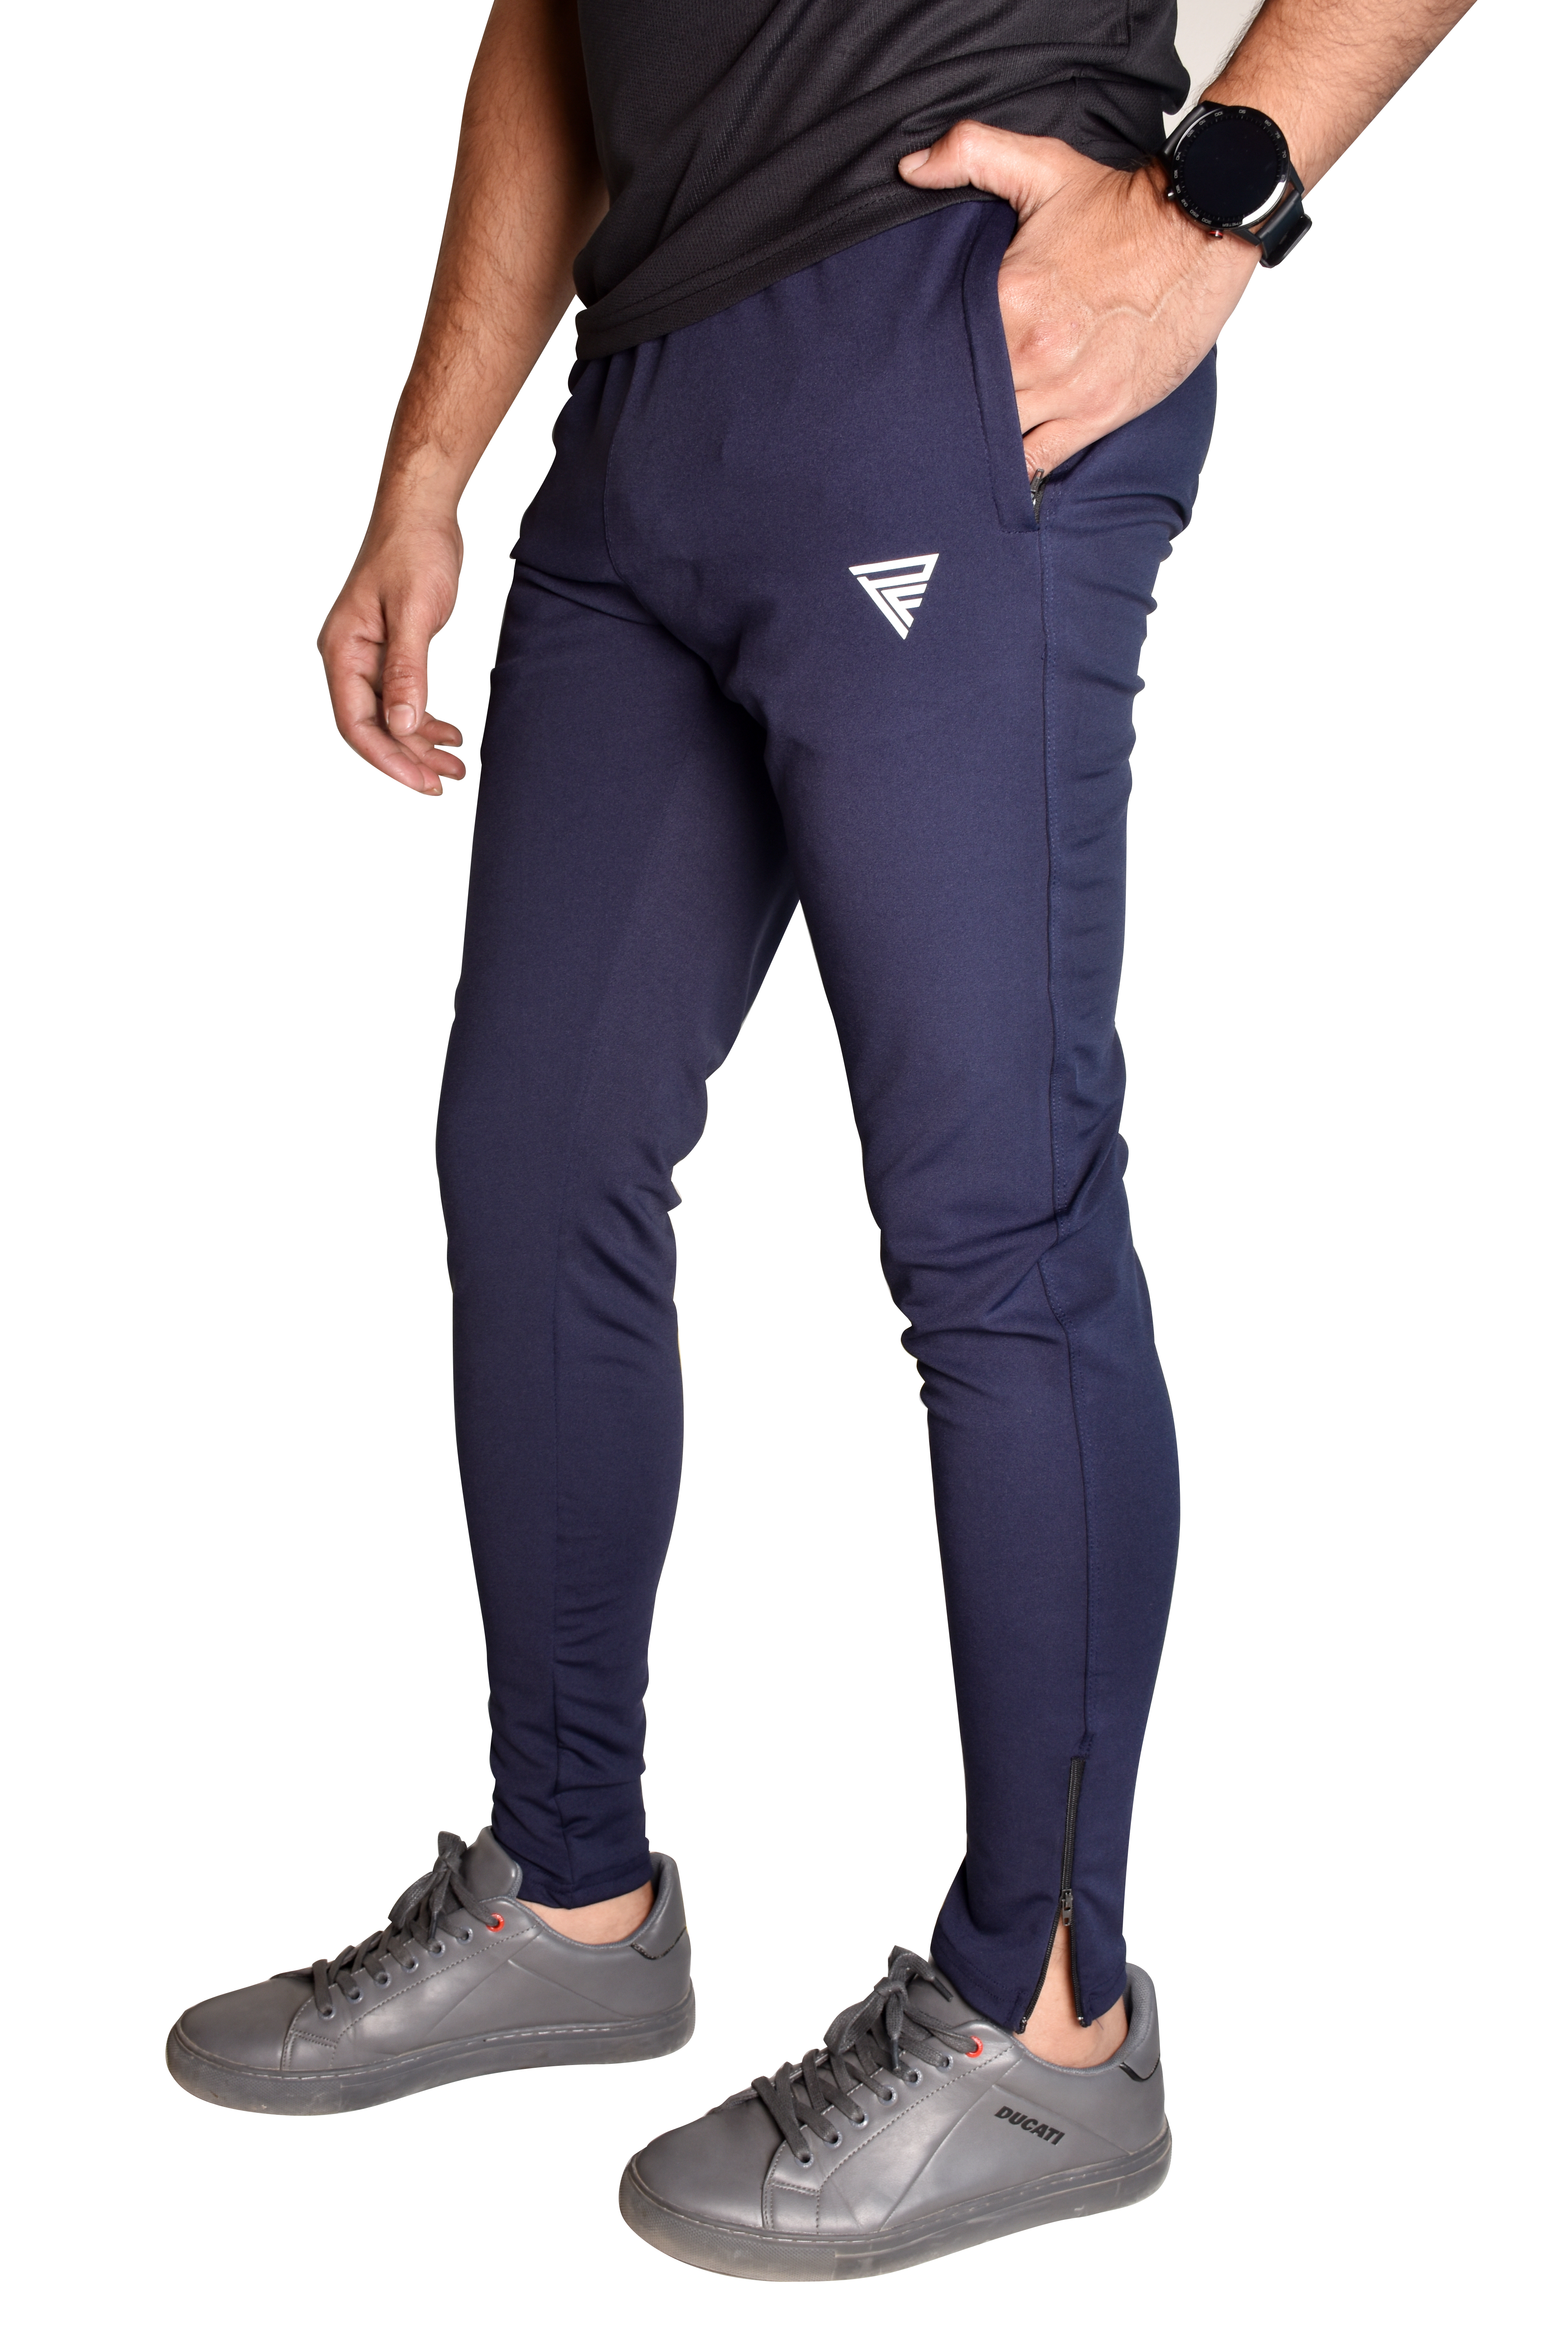 Navy blue training track pants